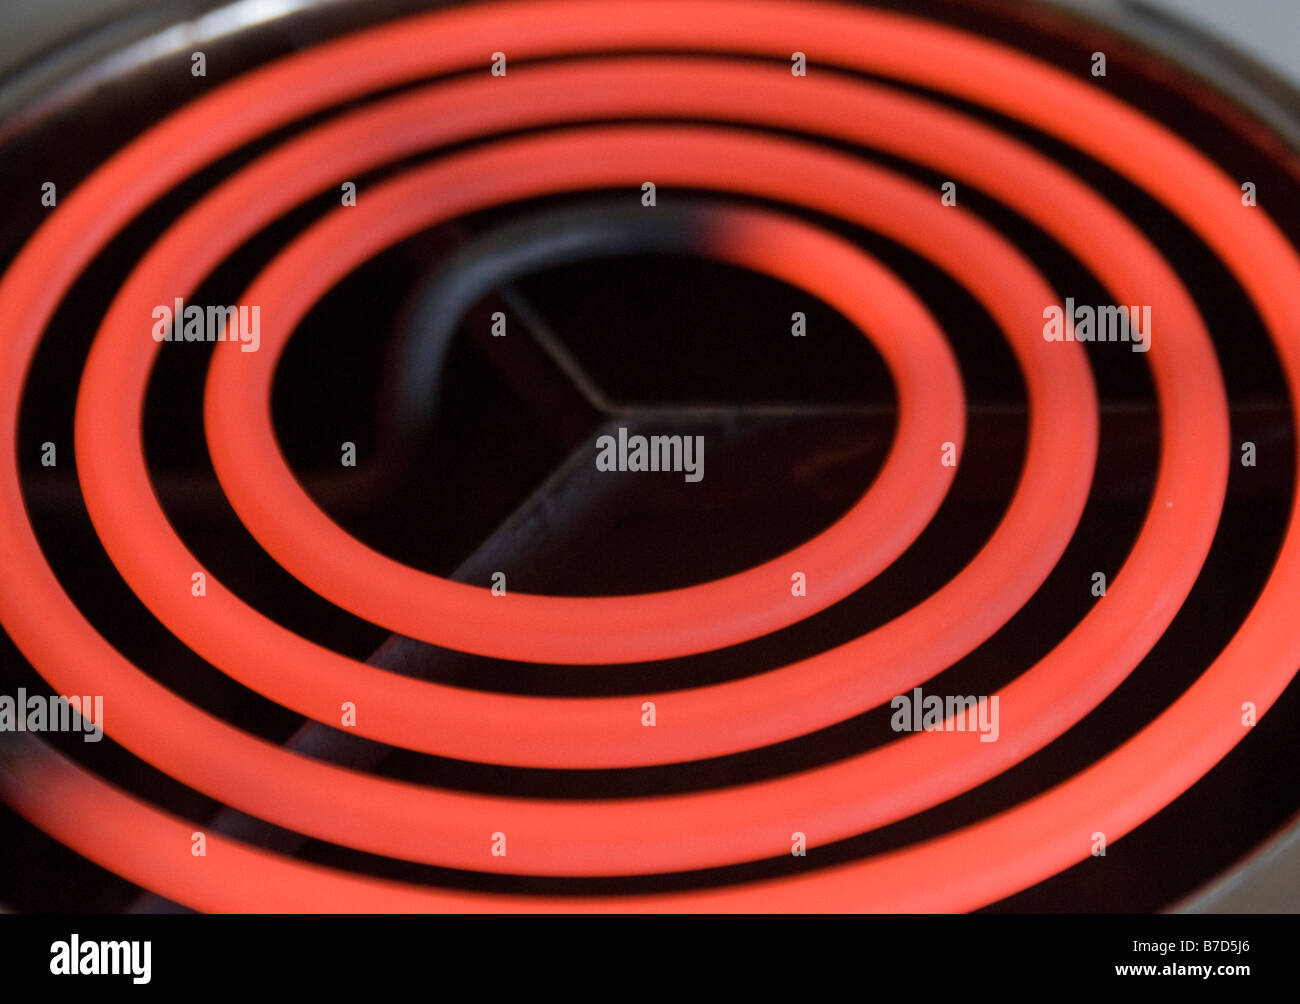 Hot Electric Cooker Ring Glowing Red Switched On Stock Photo